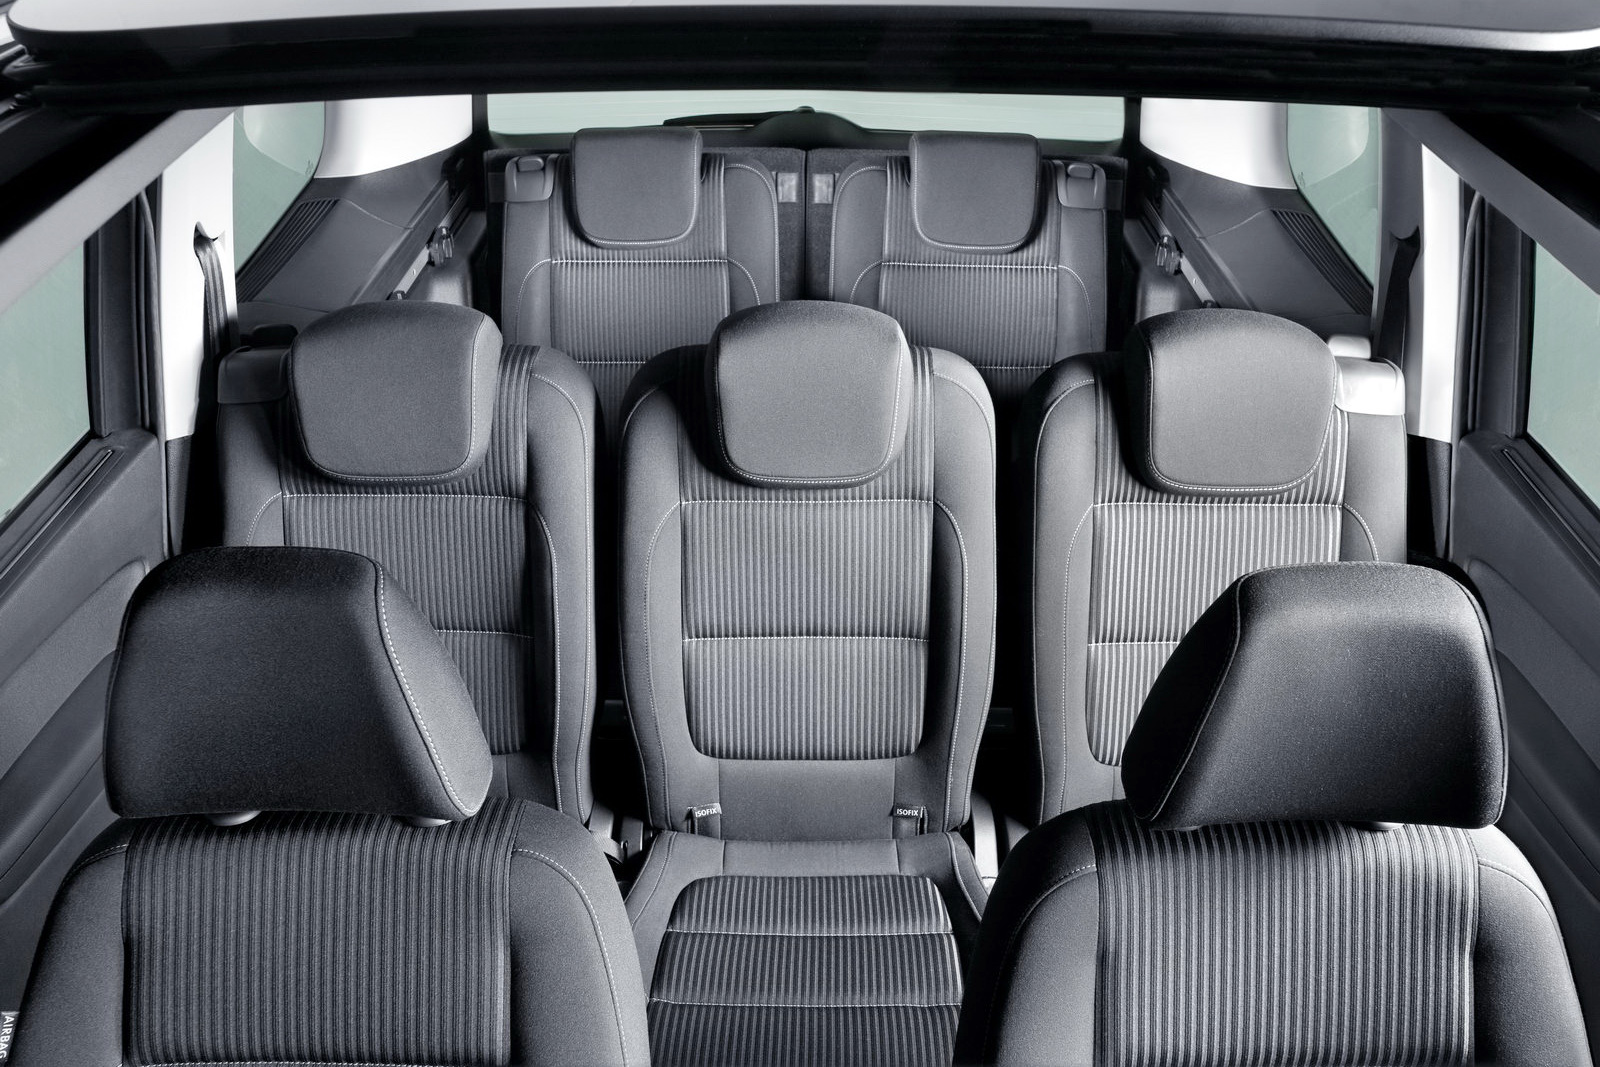 new seat alhambra mpv vw sharan 39 s twin brother officially revealed carscoops. Black Bedroom Furniture Sets. Home Design Ideas